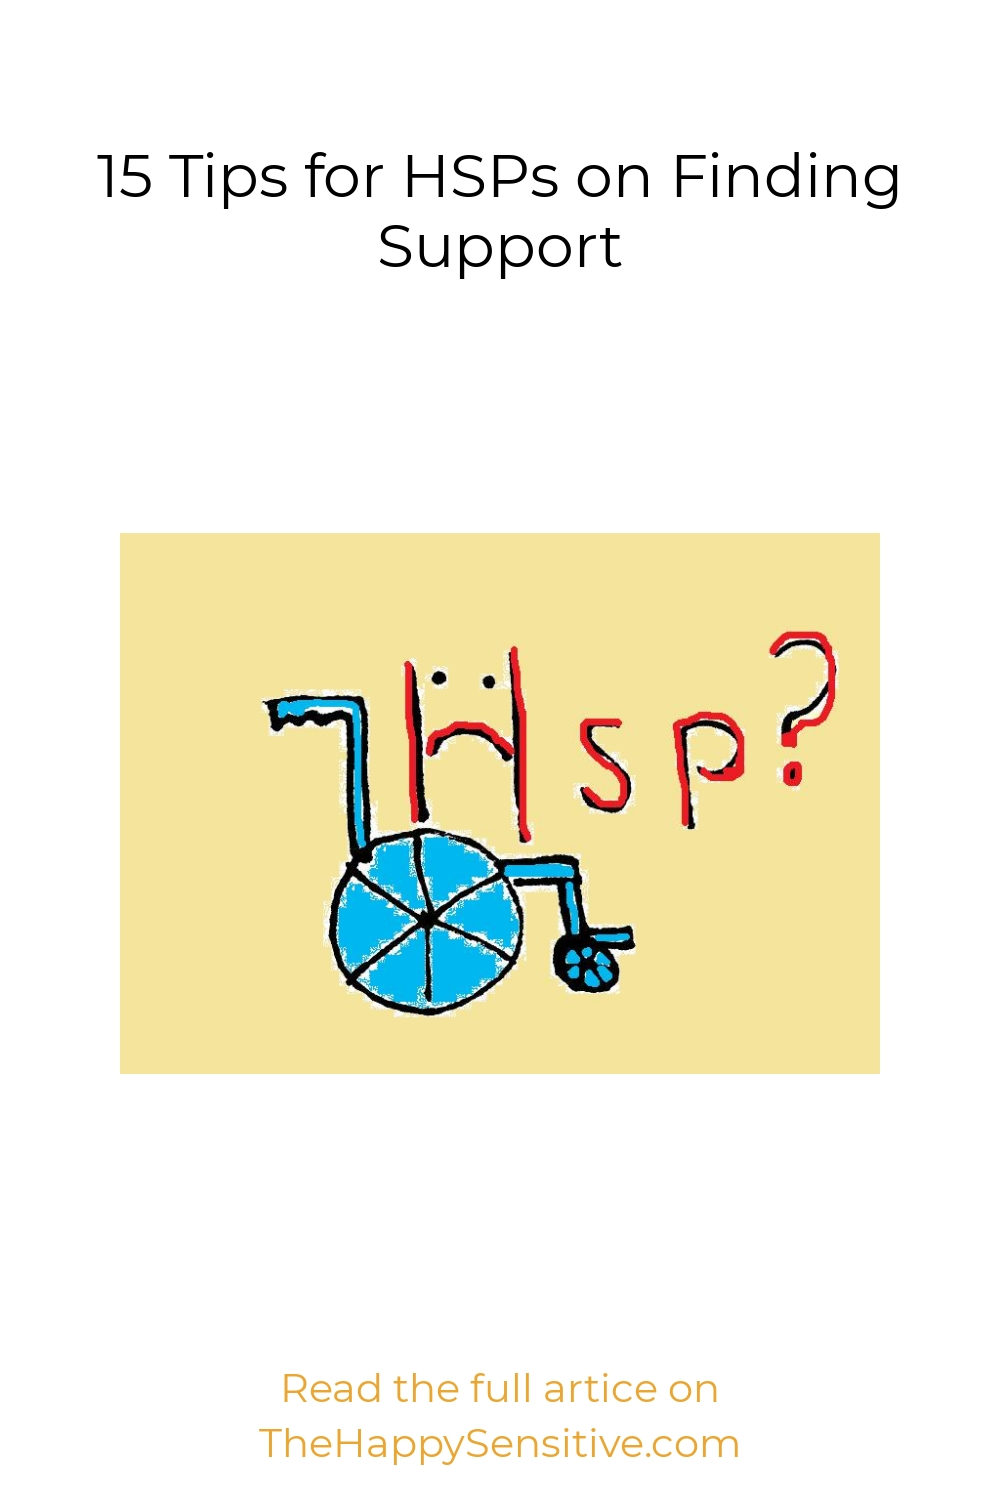 15 Tips for HSPs on Finding Support